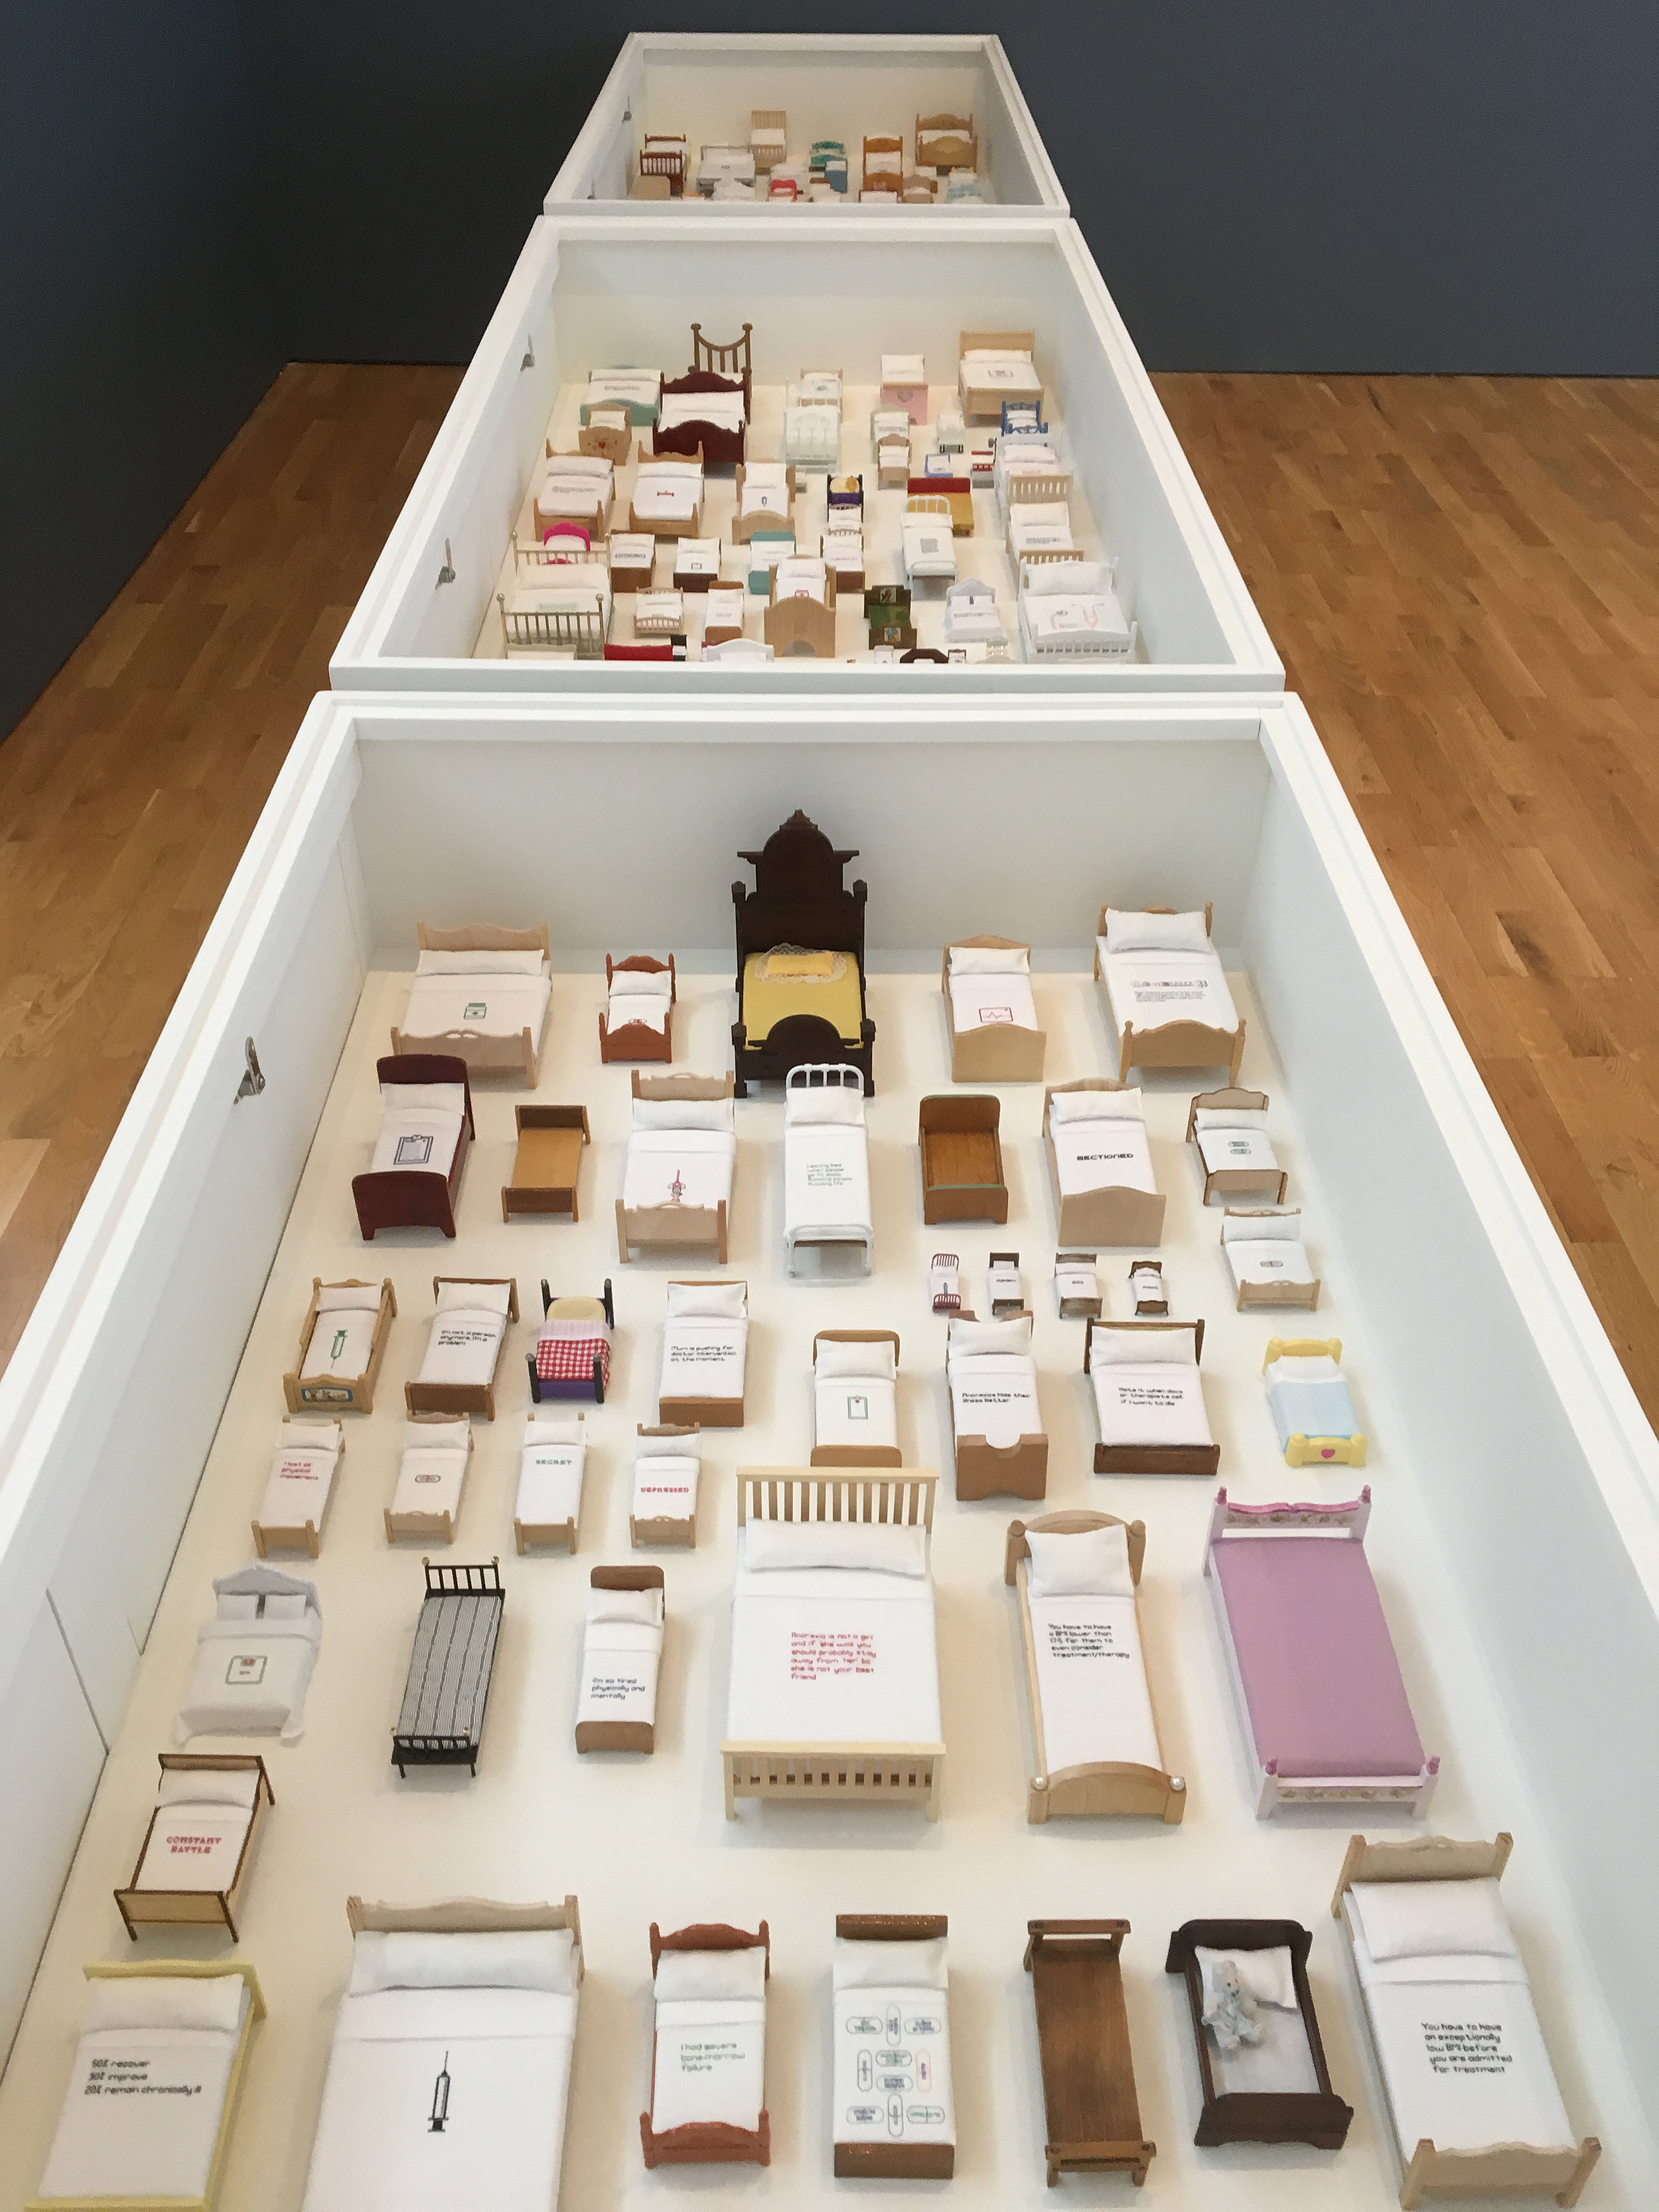 In-situ at MAC Birmingham as part of Ctrl/Shift, a project by The 62 Group of Textile Artists. The exhibition concept was developed in partnership with the 62 Group and independent curator Liz Cooper.